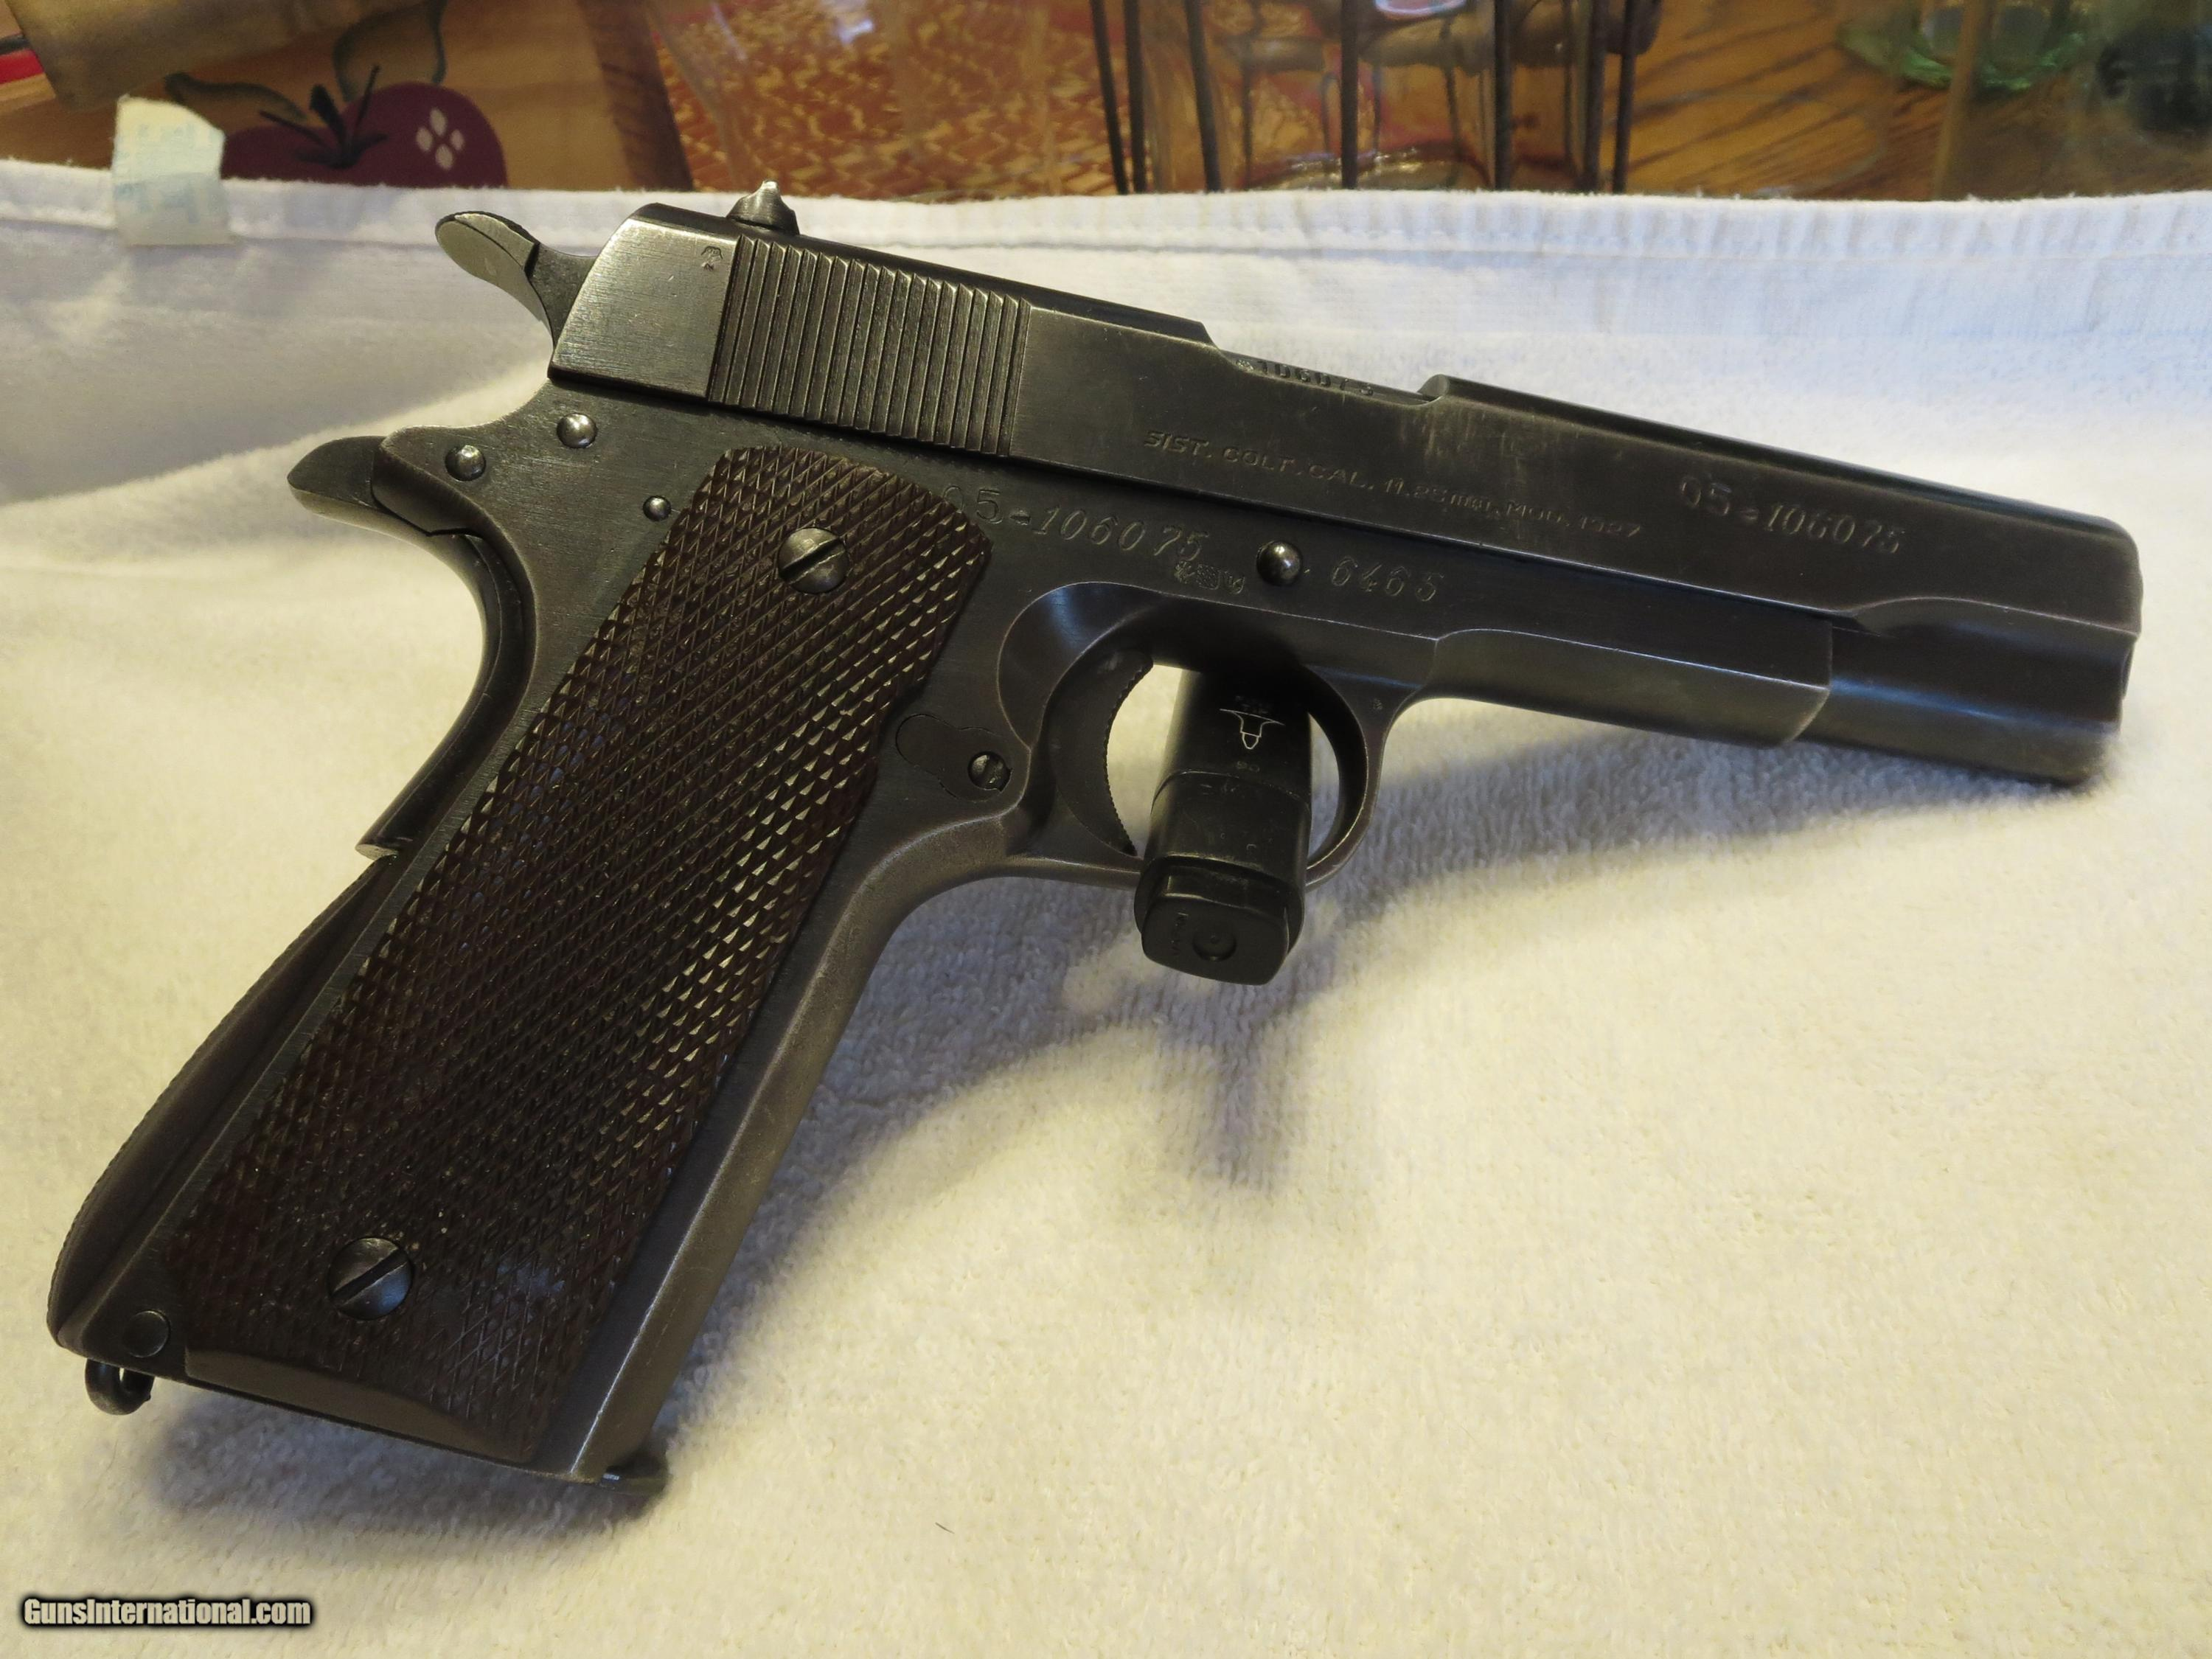 1959 Argentine Sistema Model 1927 1911(Colt 1911A1 Contract) 45 ACP